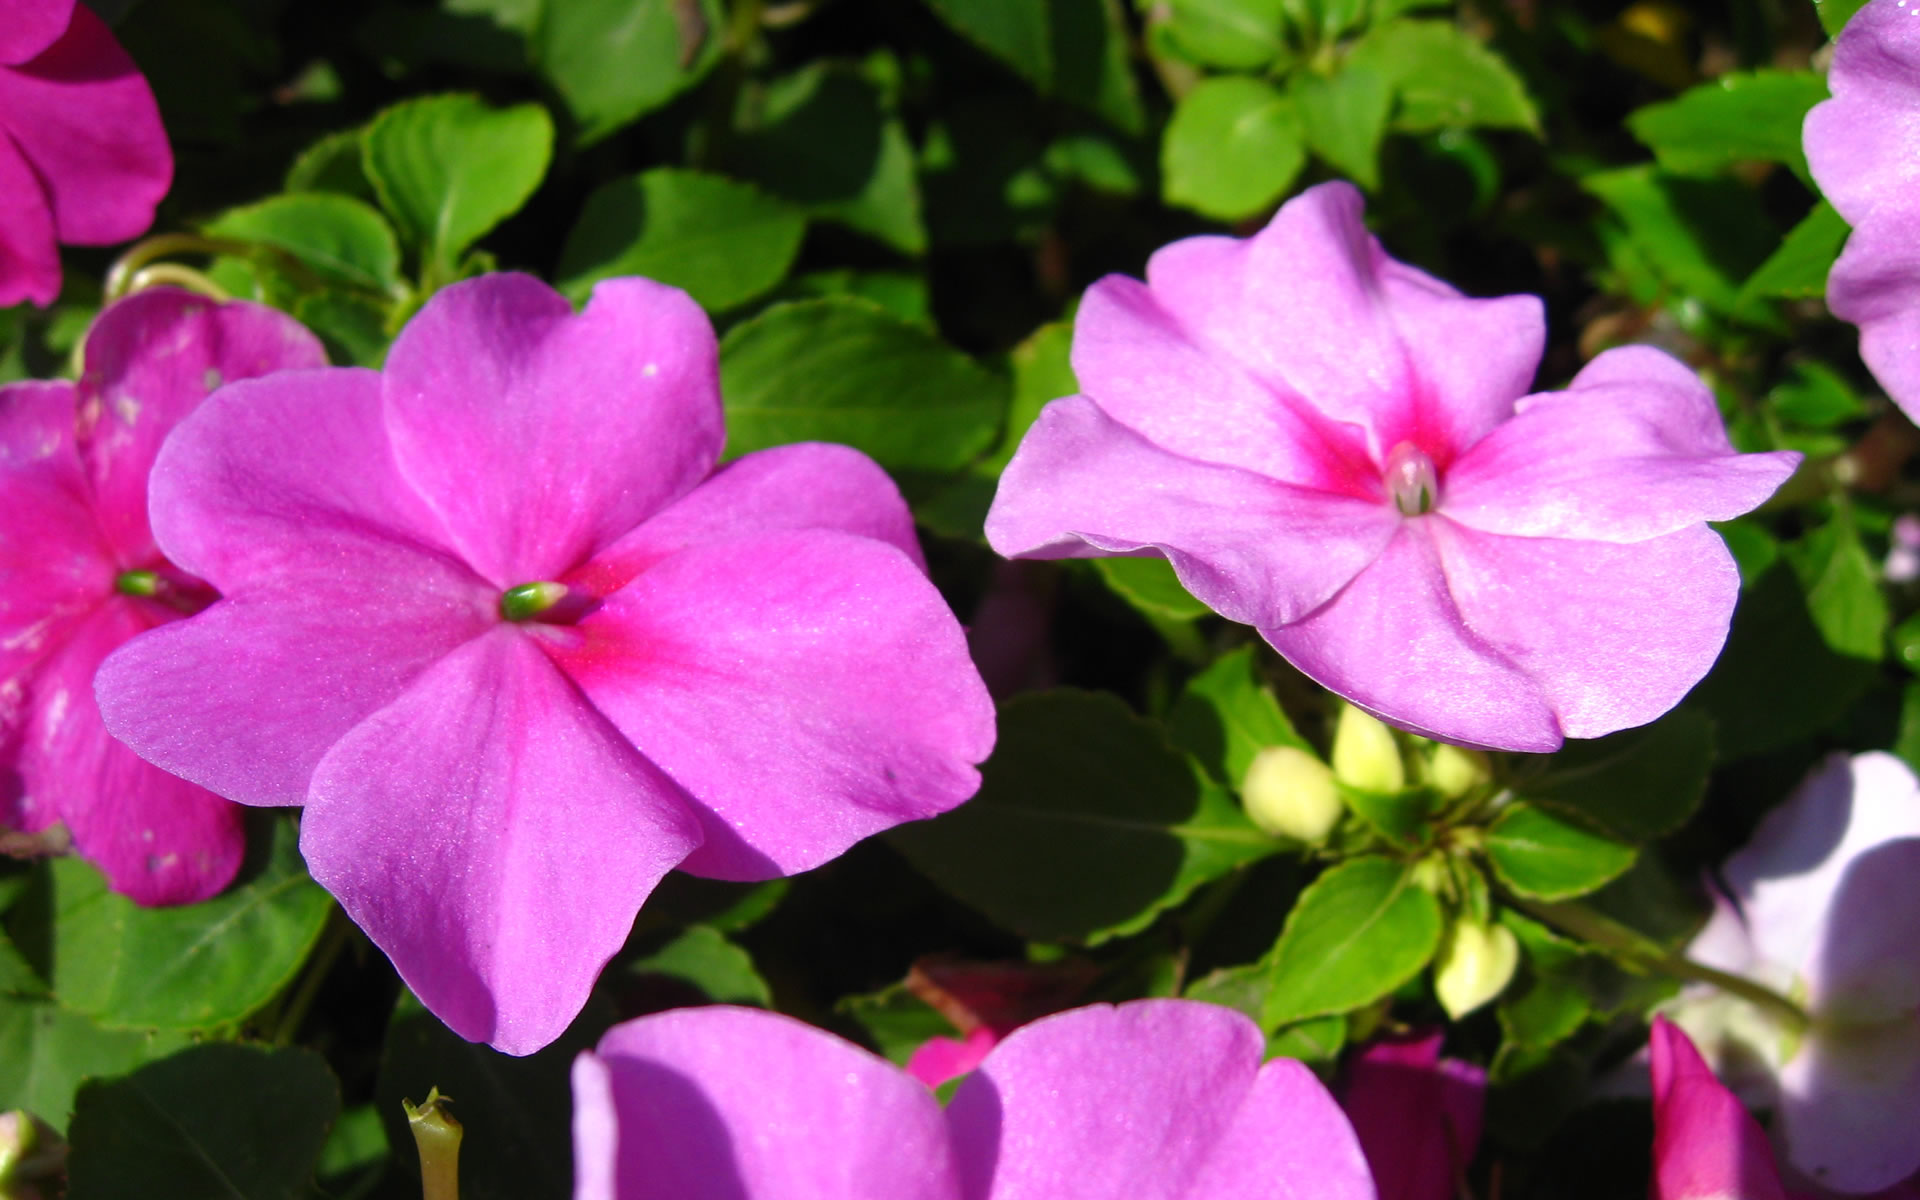 Impatiens flowers the best top flowers wallpaper for What are the best flowers